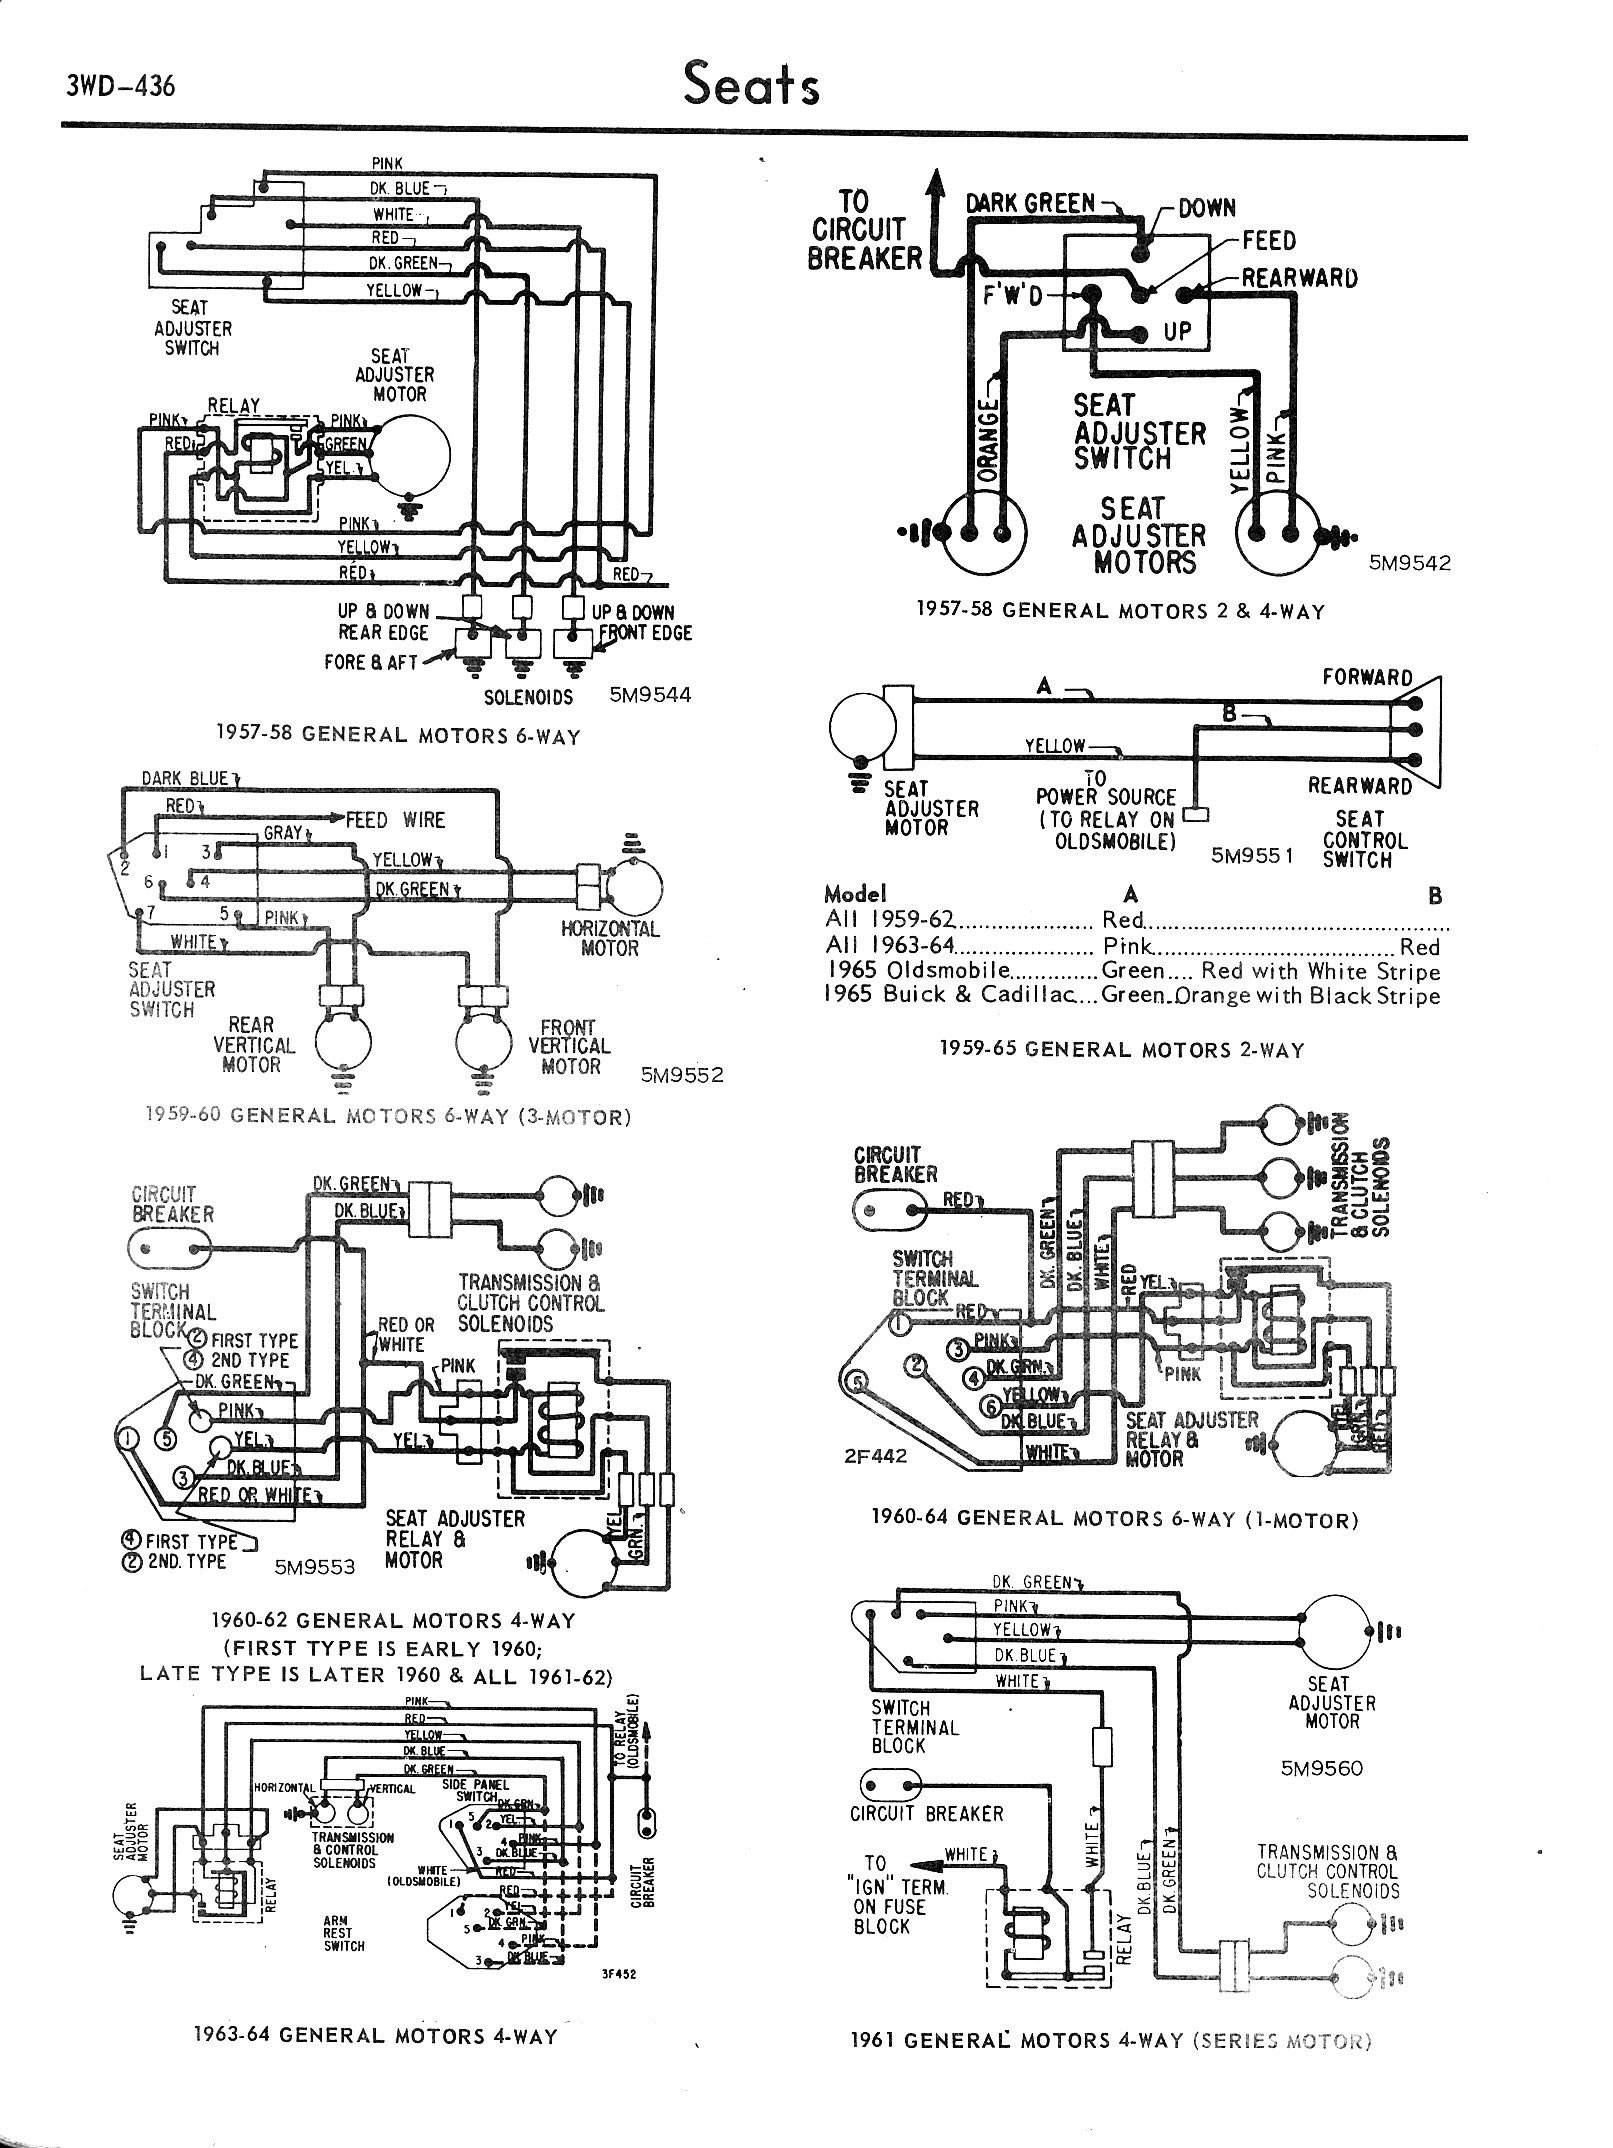 Chevy Diagrams 64 El Camino Wiring Diagram C 57 Gm A Mix Of 2 Way 4 6